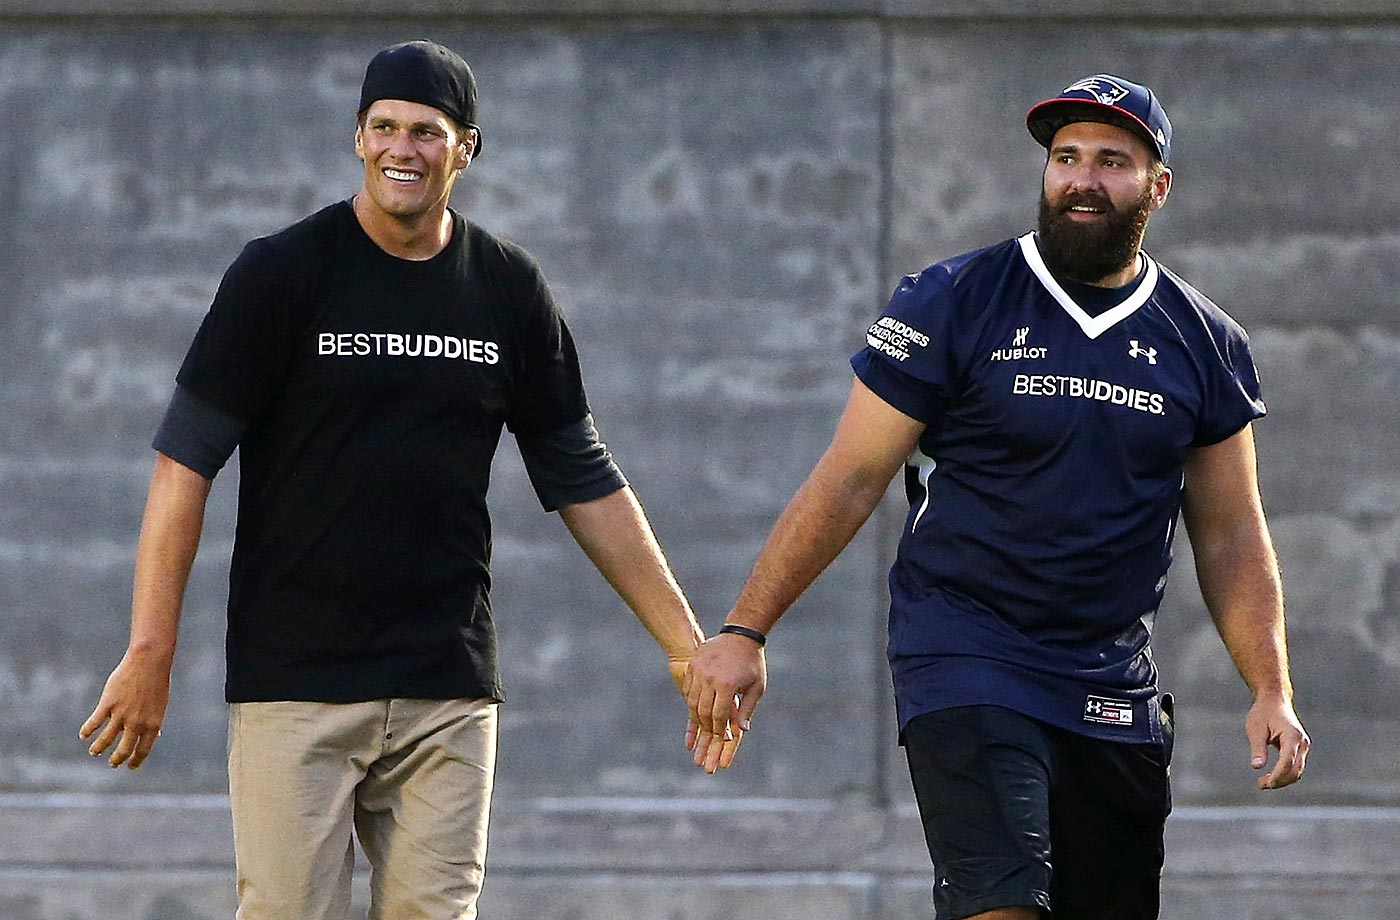 Tom Brady and Rob Ninkovich of the New England Patriots after they played in the Best Buddies Challenge charity football game.